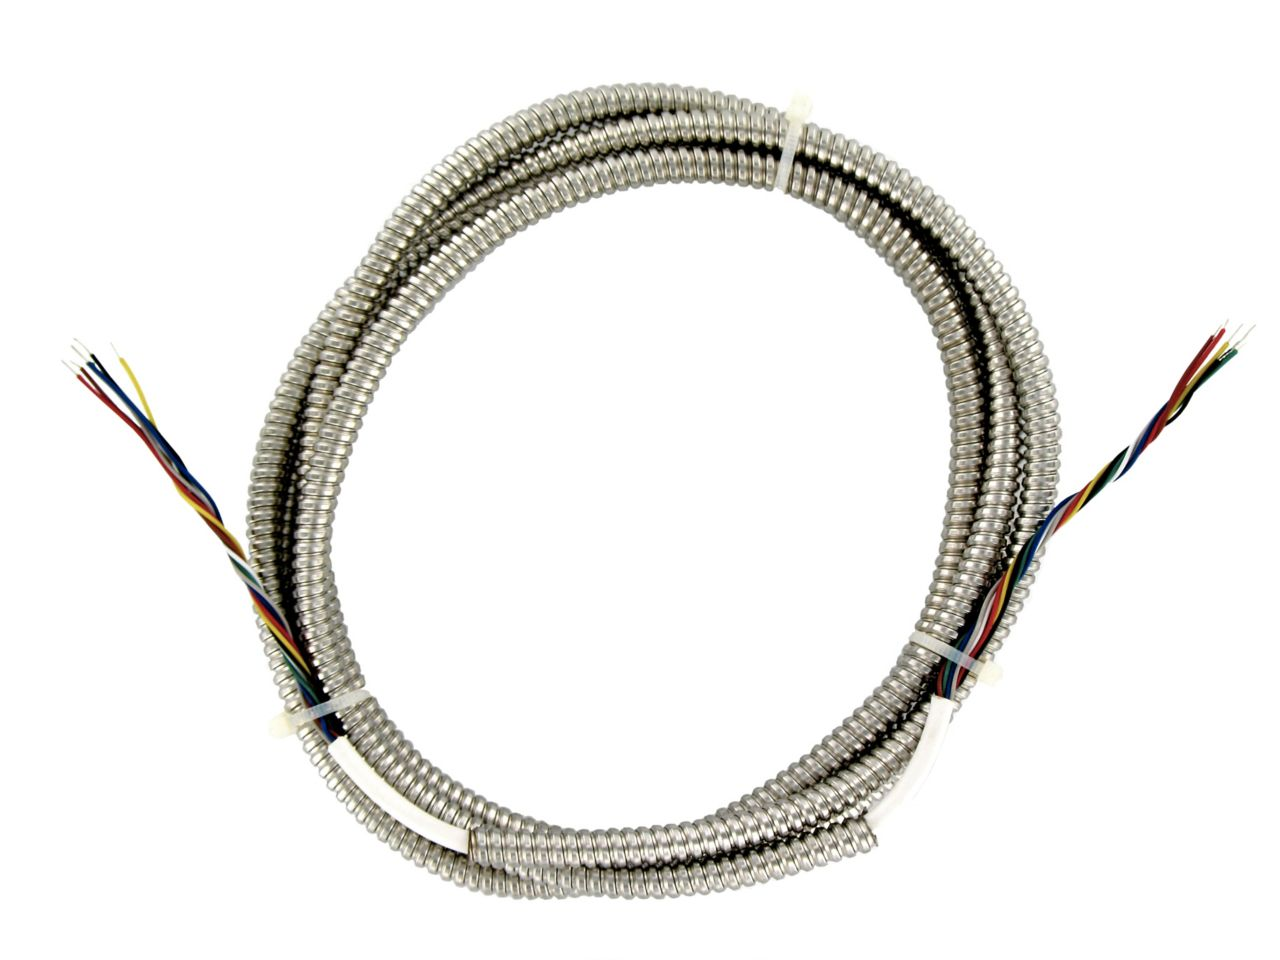 SC100 Series�Armed Cable Kit